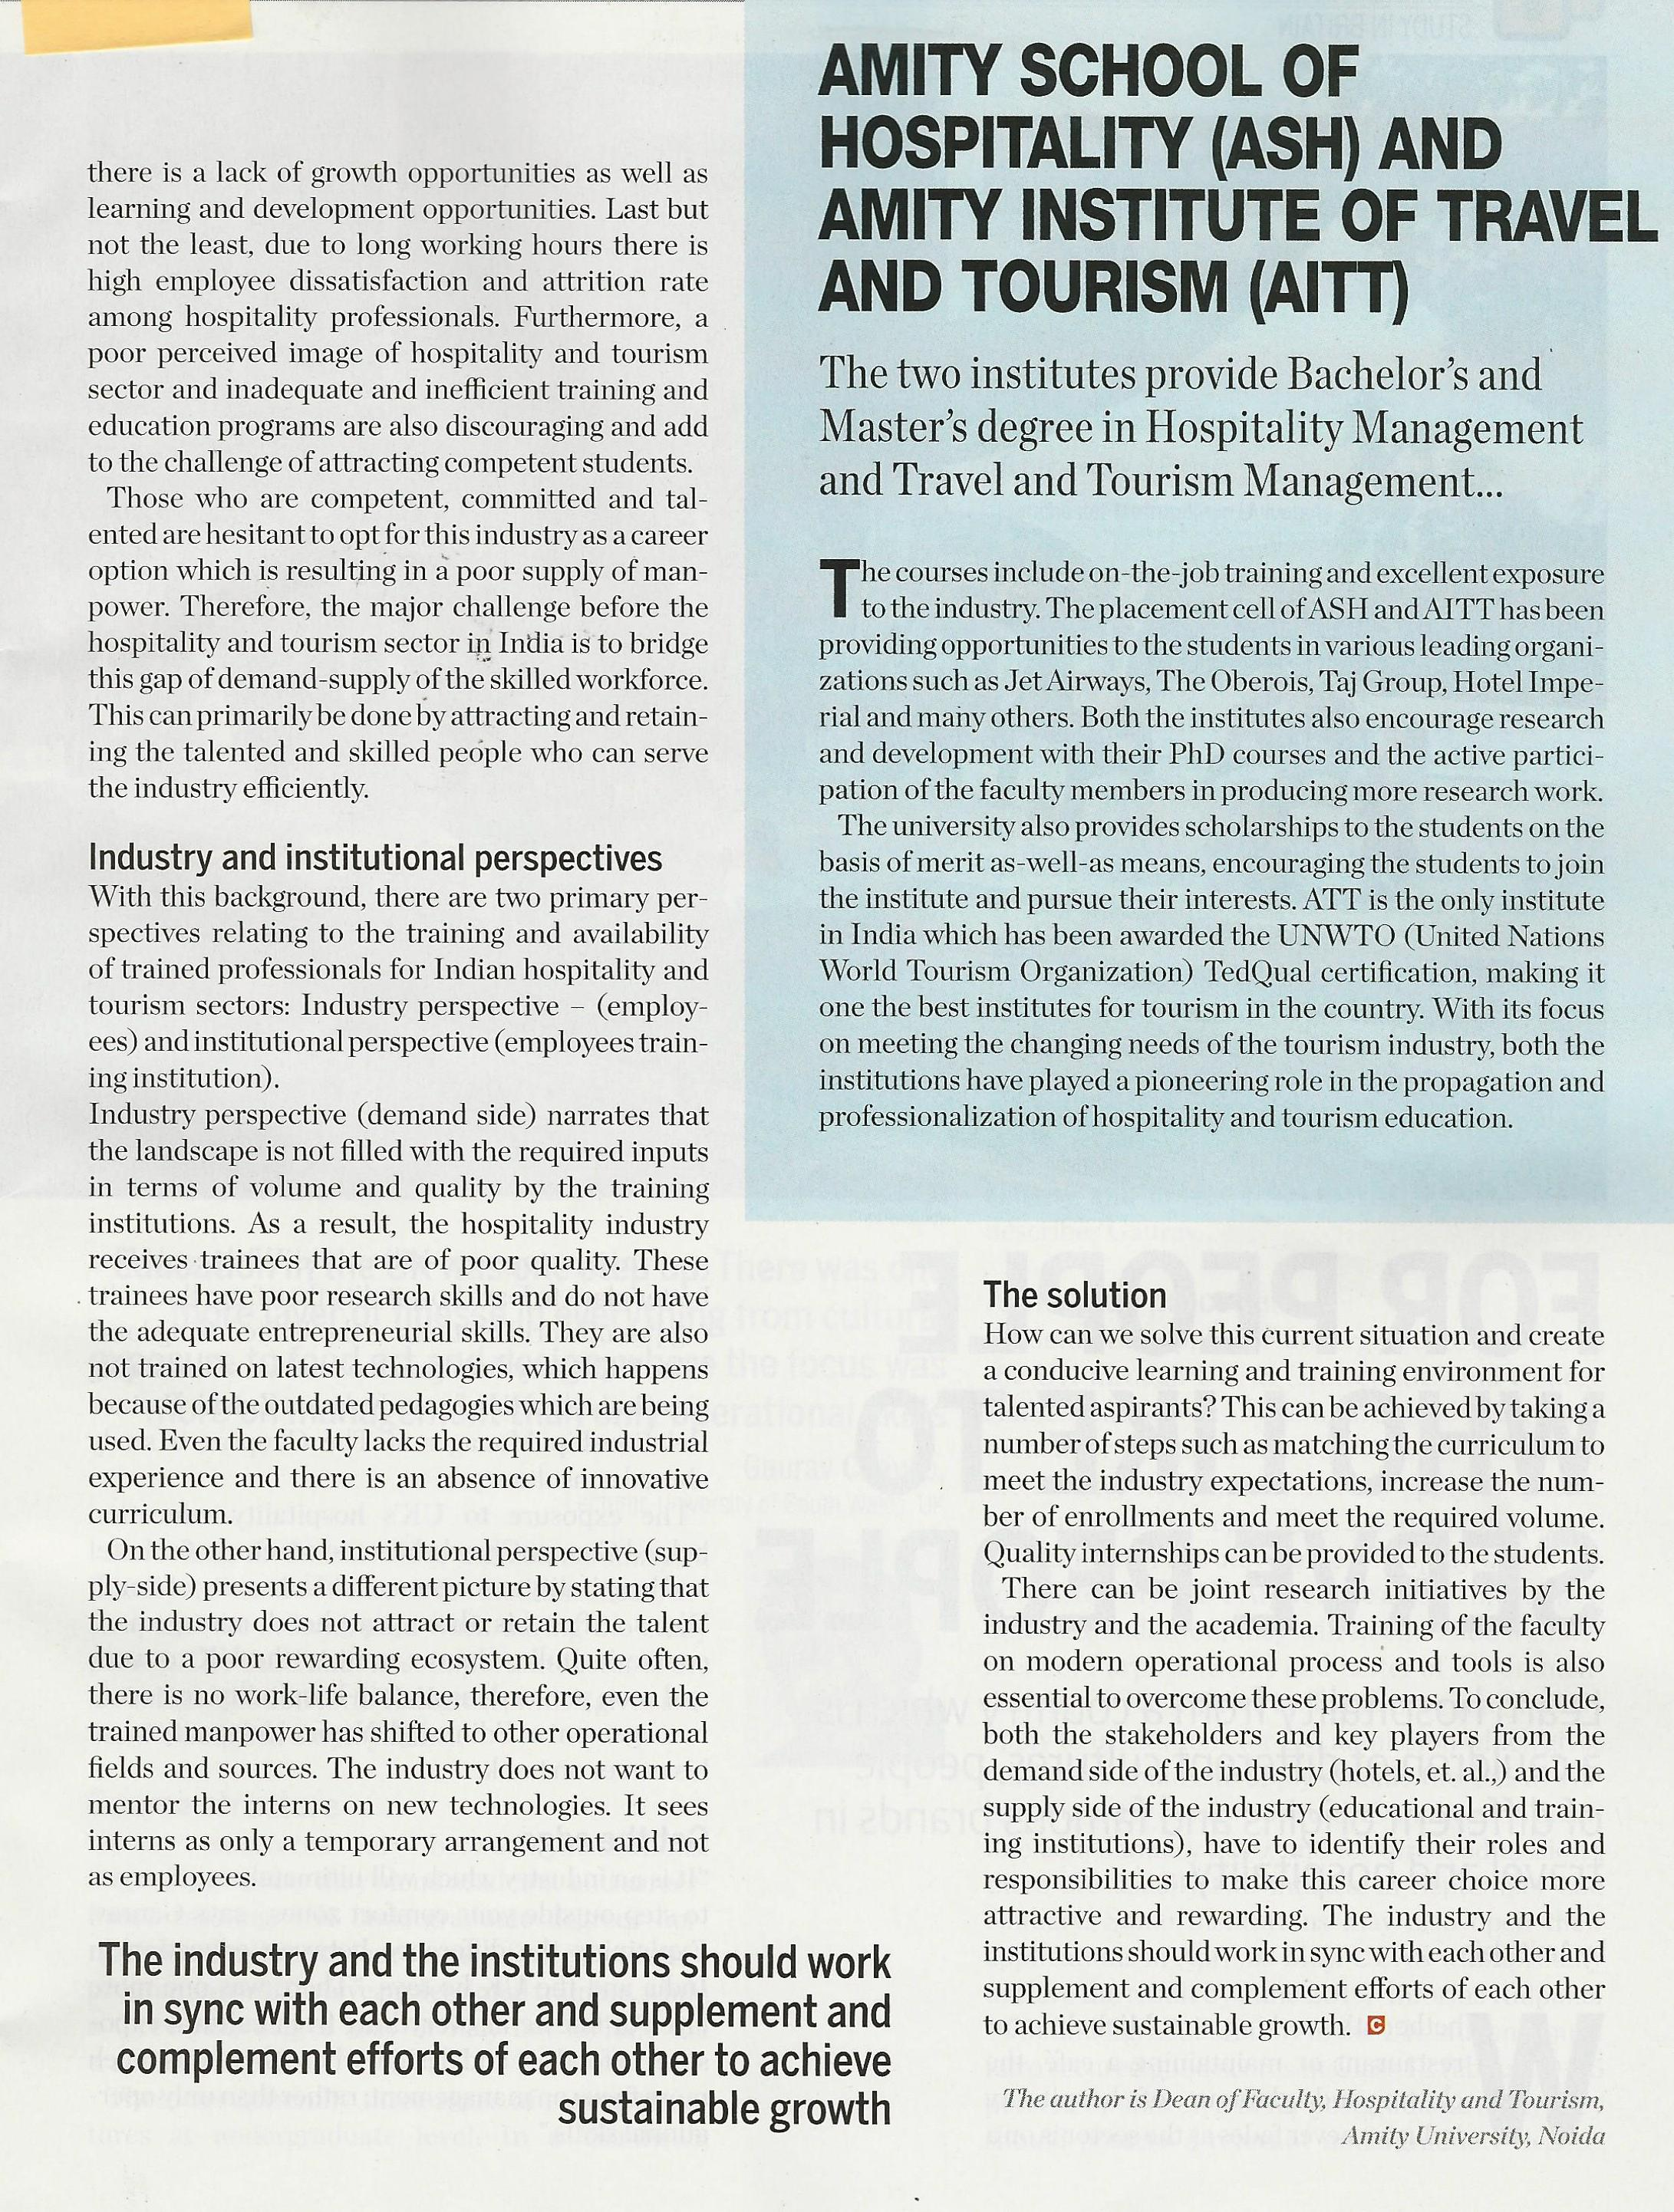 Challenges and way ahead for Indian Hospitality Sector- Article by Prof.(Dr) M. Sajnani - Amity Events